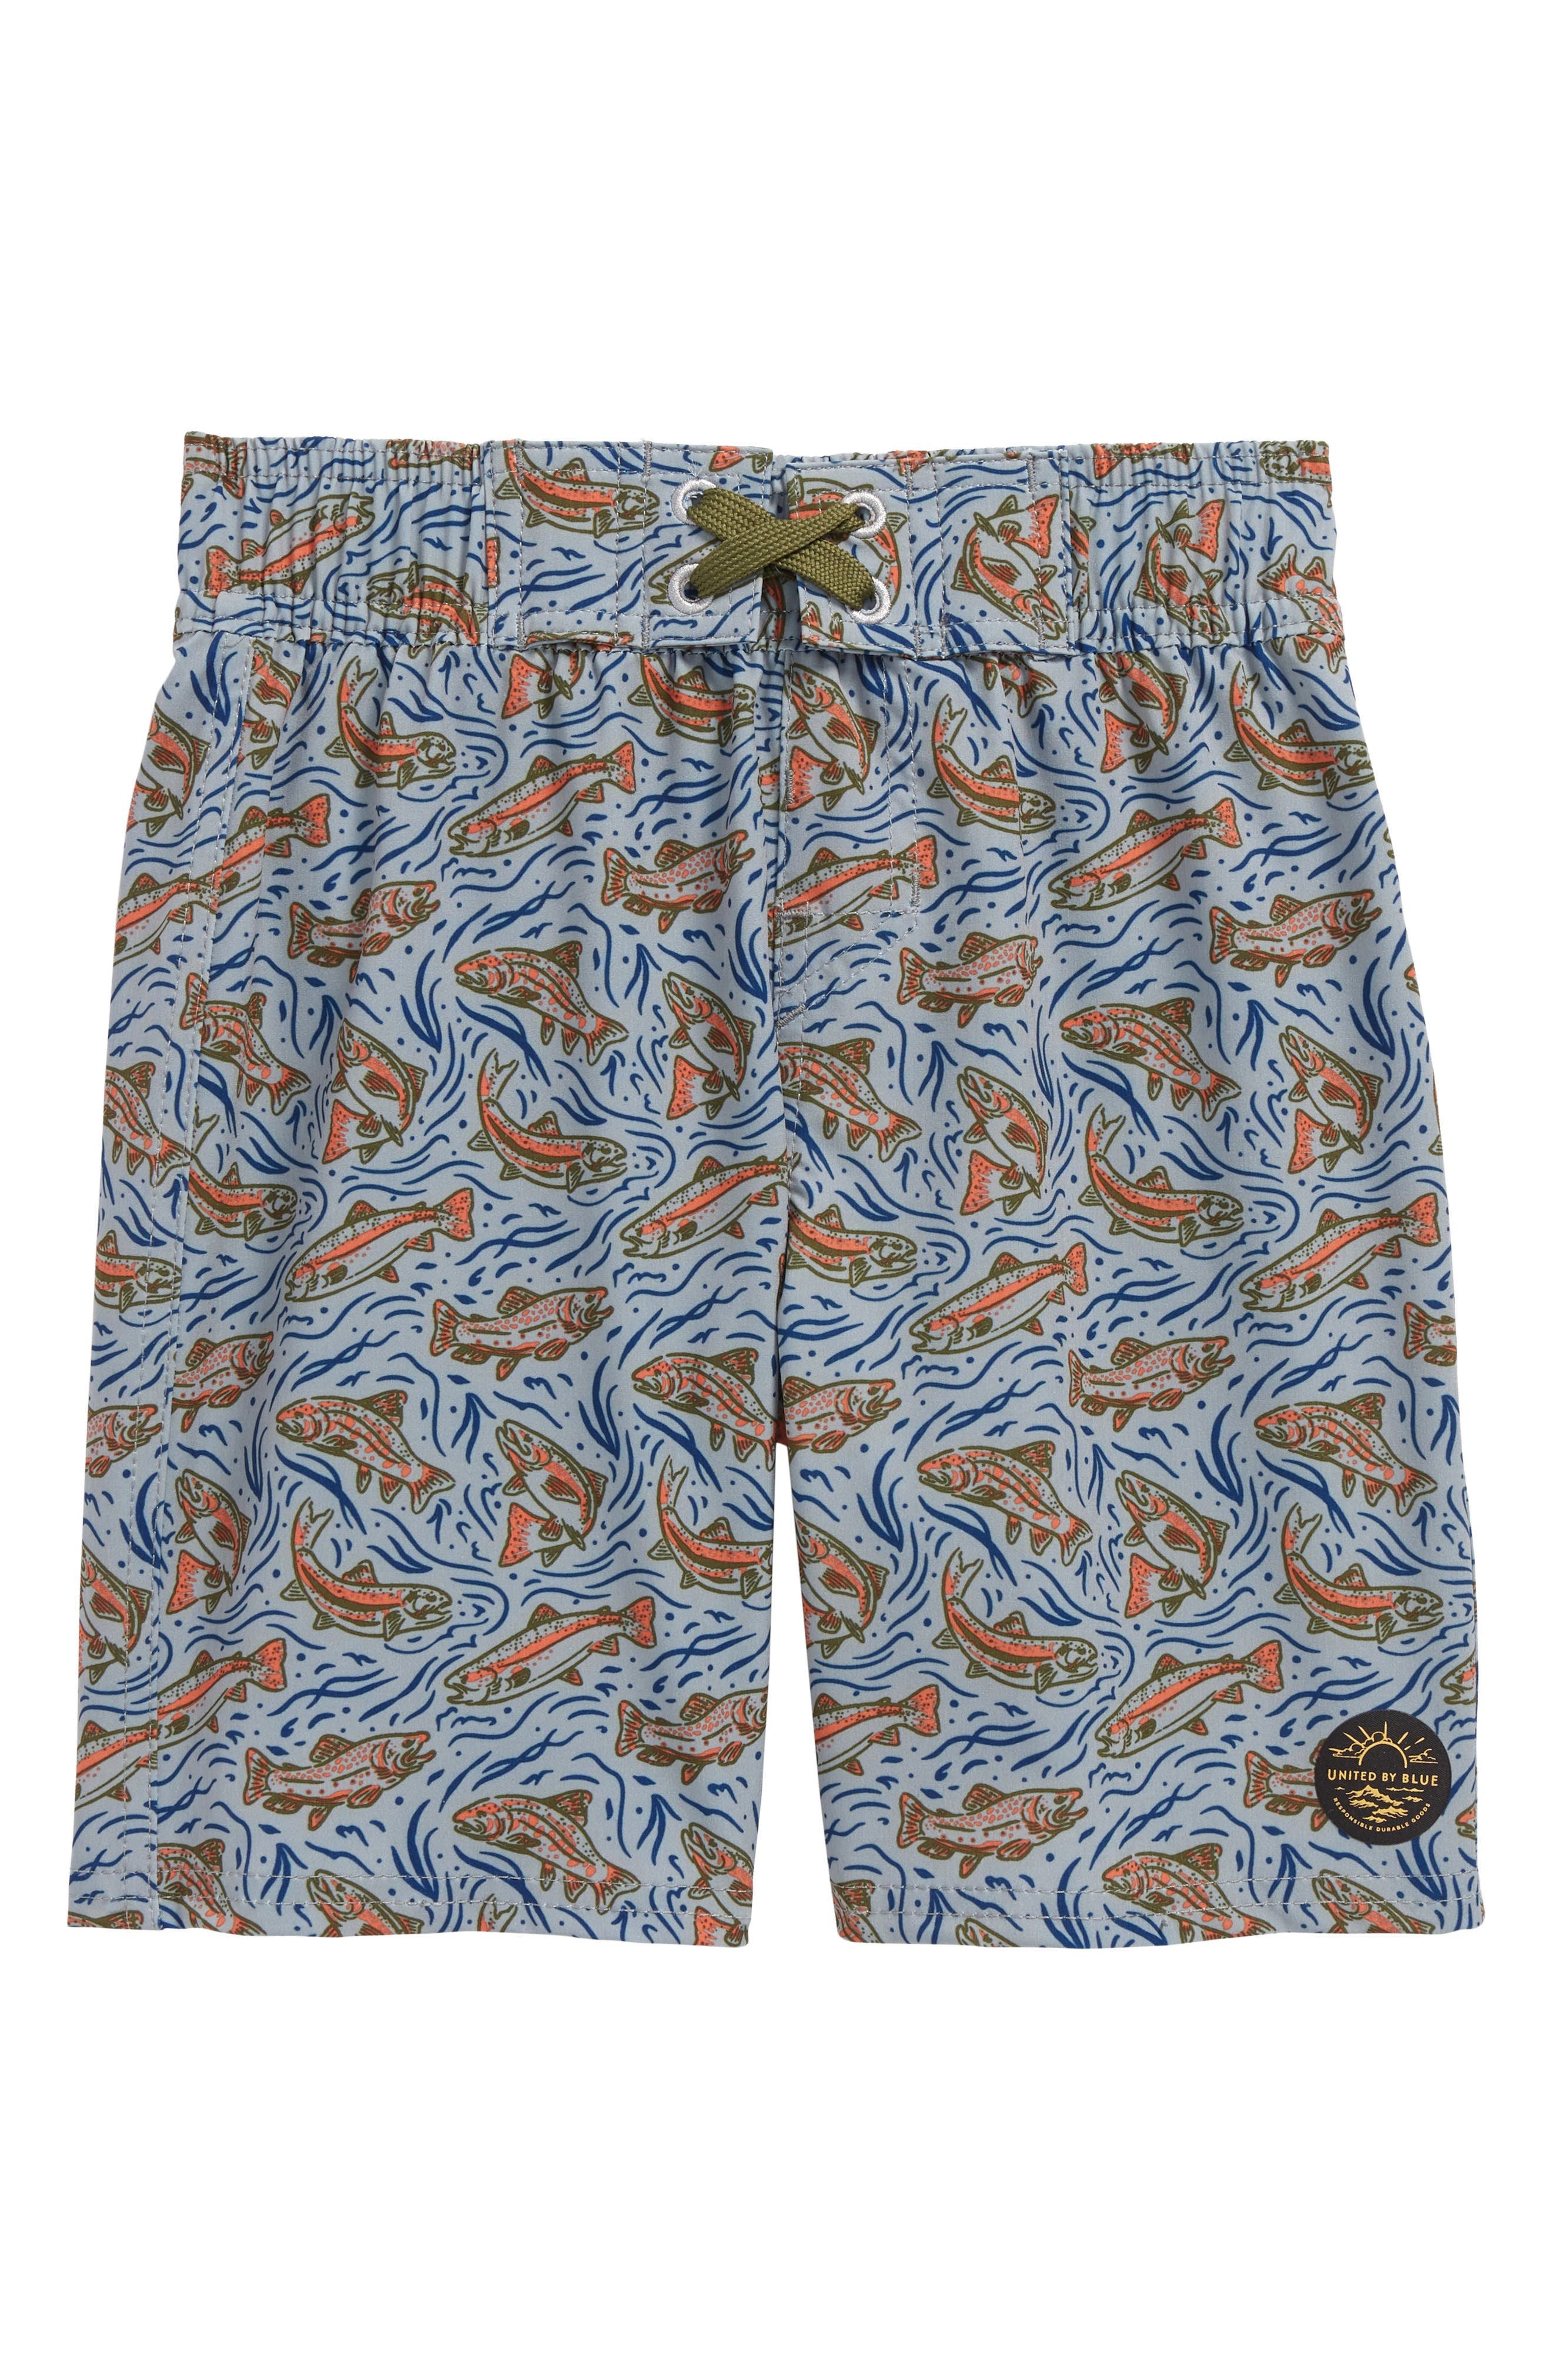 Alternate Image 1 Selected - United By Blue Upstream Board Shorts (Little Boys & Big Boys)